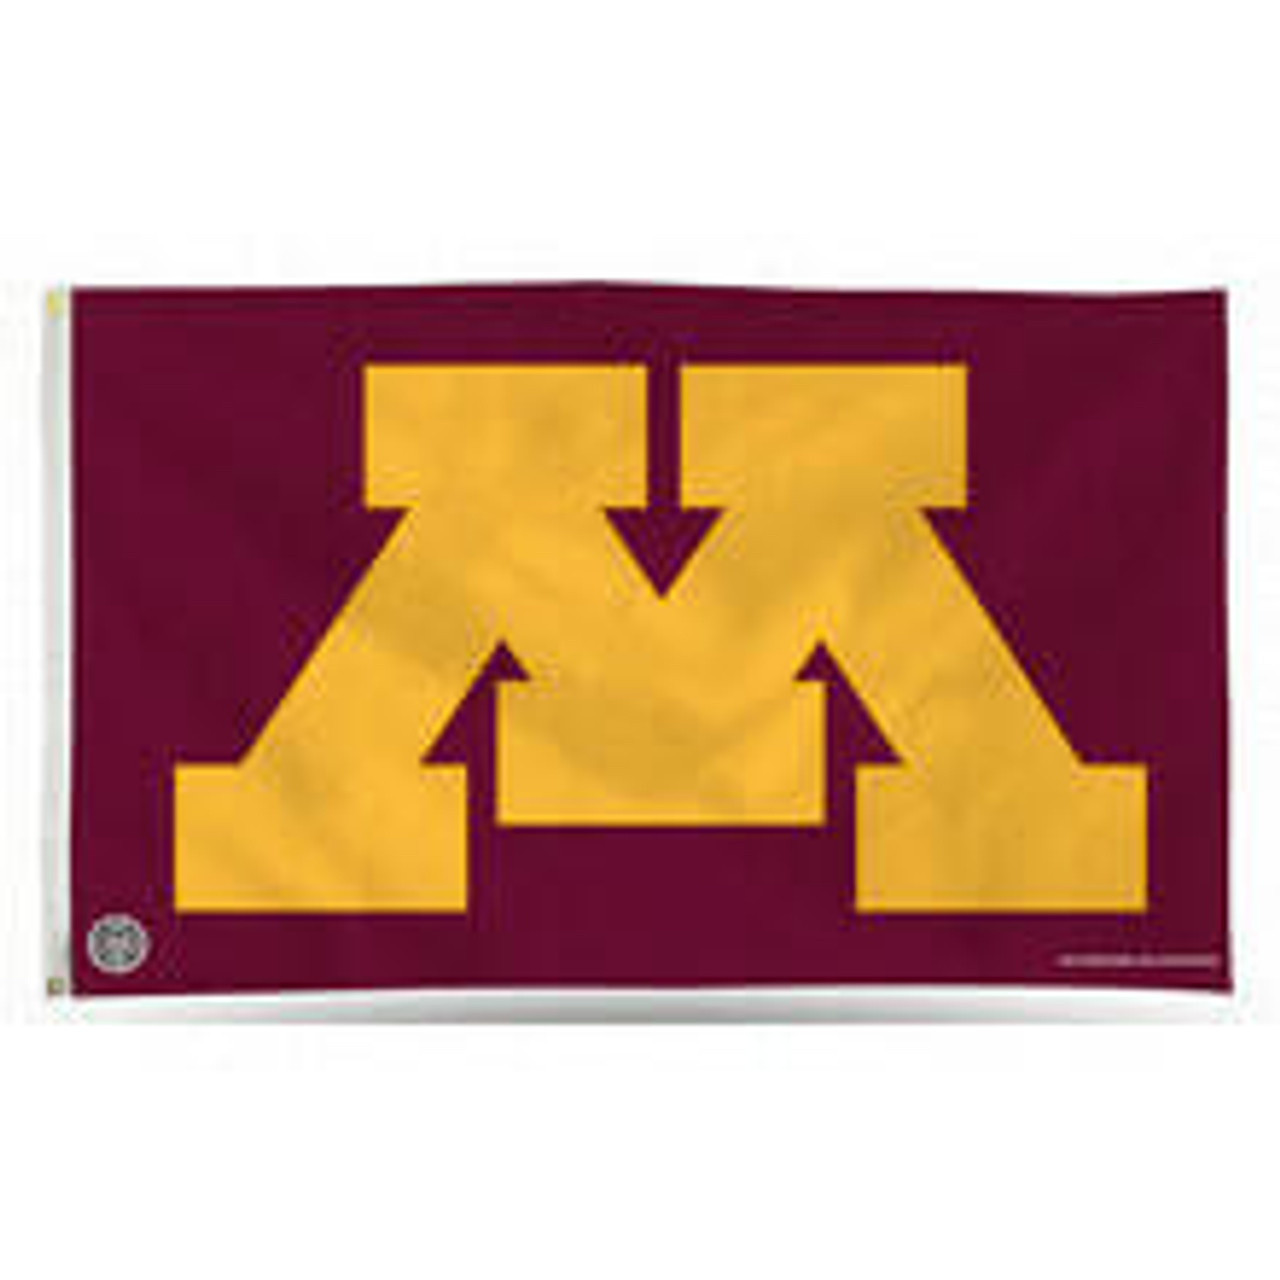 A crimson flag with an emblem of the Minnesota University M logo taking up a majority of the flag.